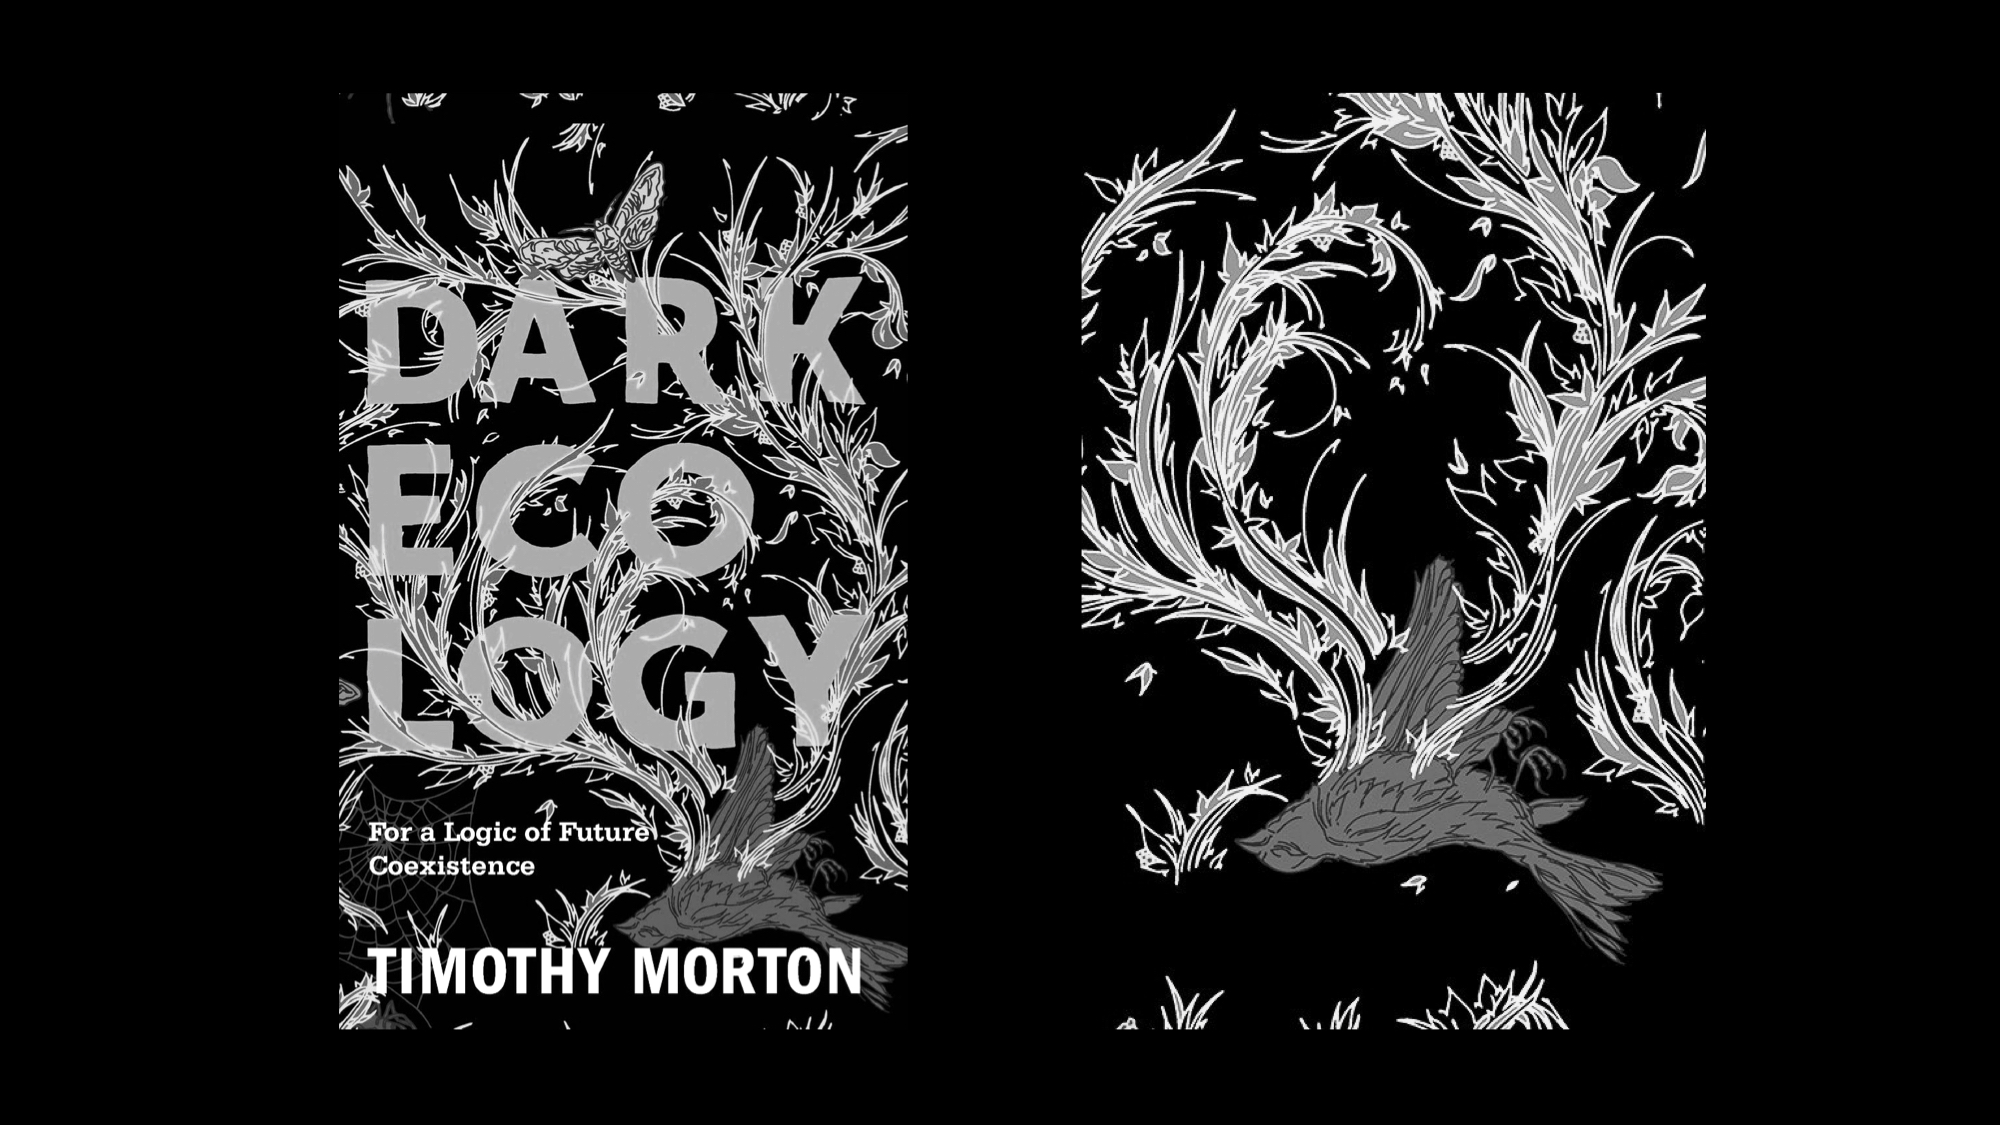 Cover of Timothy Morton's Dark Ecology shows plant life growing out of the remains of a dead sparrow, surrounded by a black background with a moth and cobweb in the background.